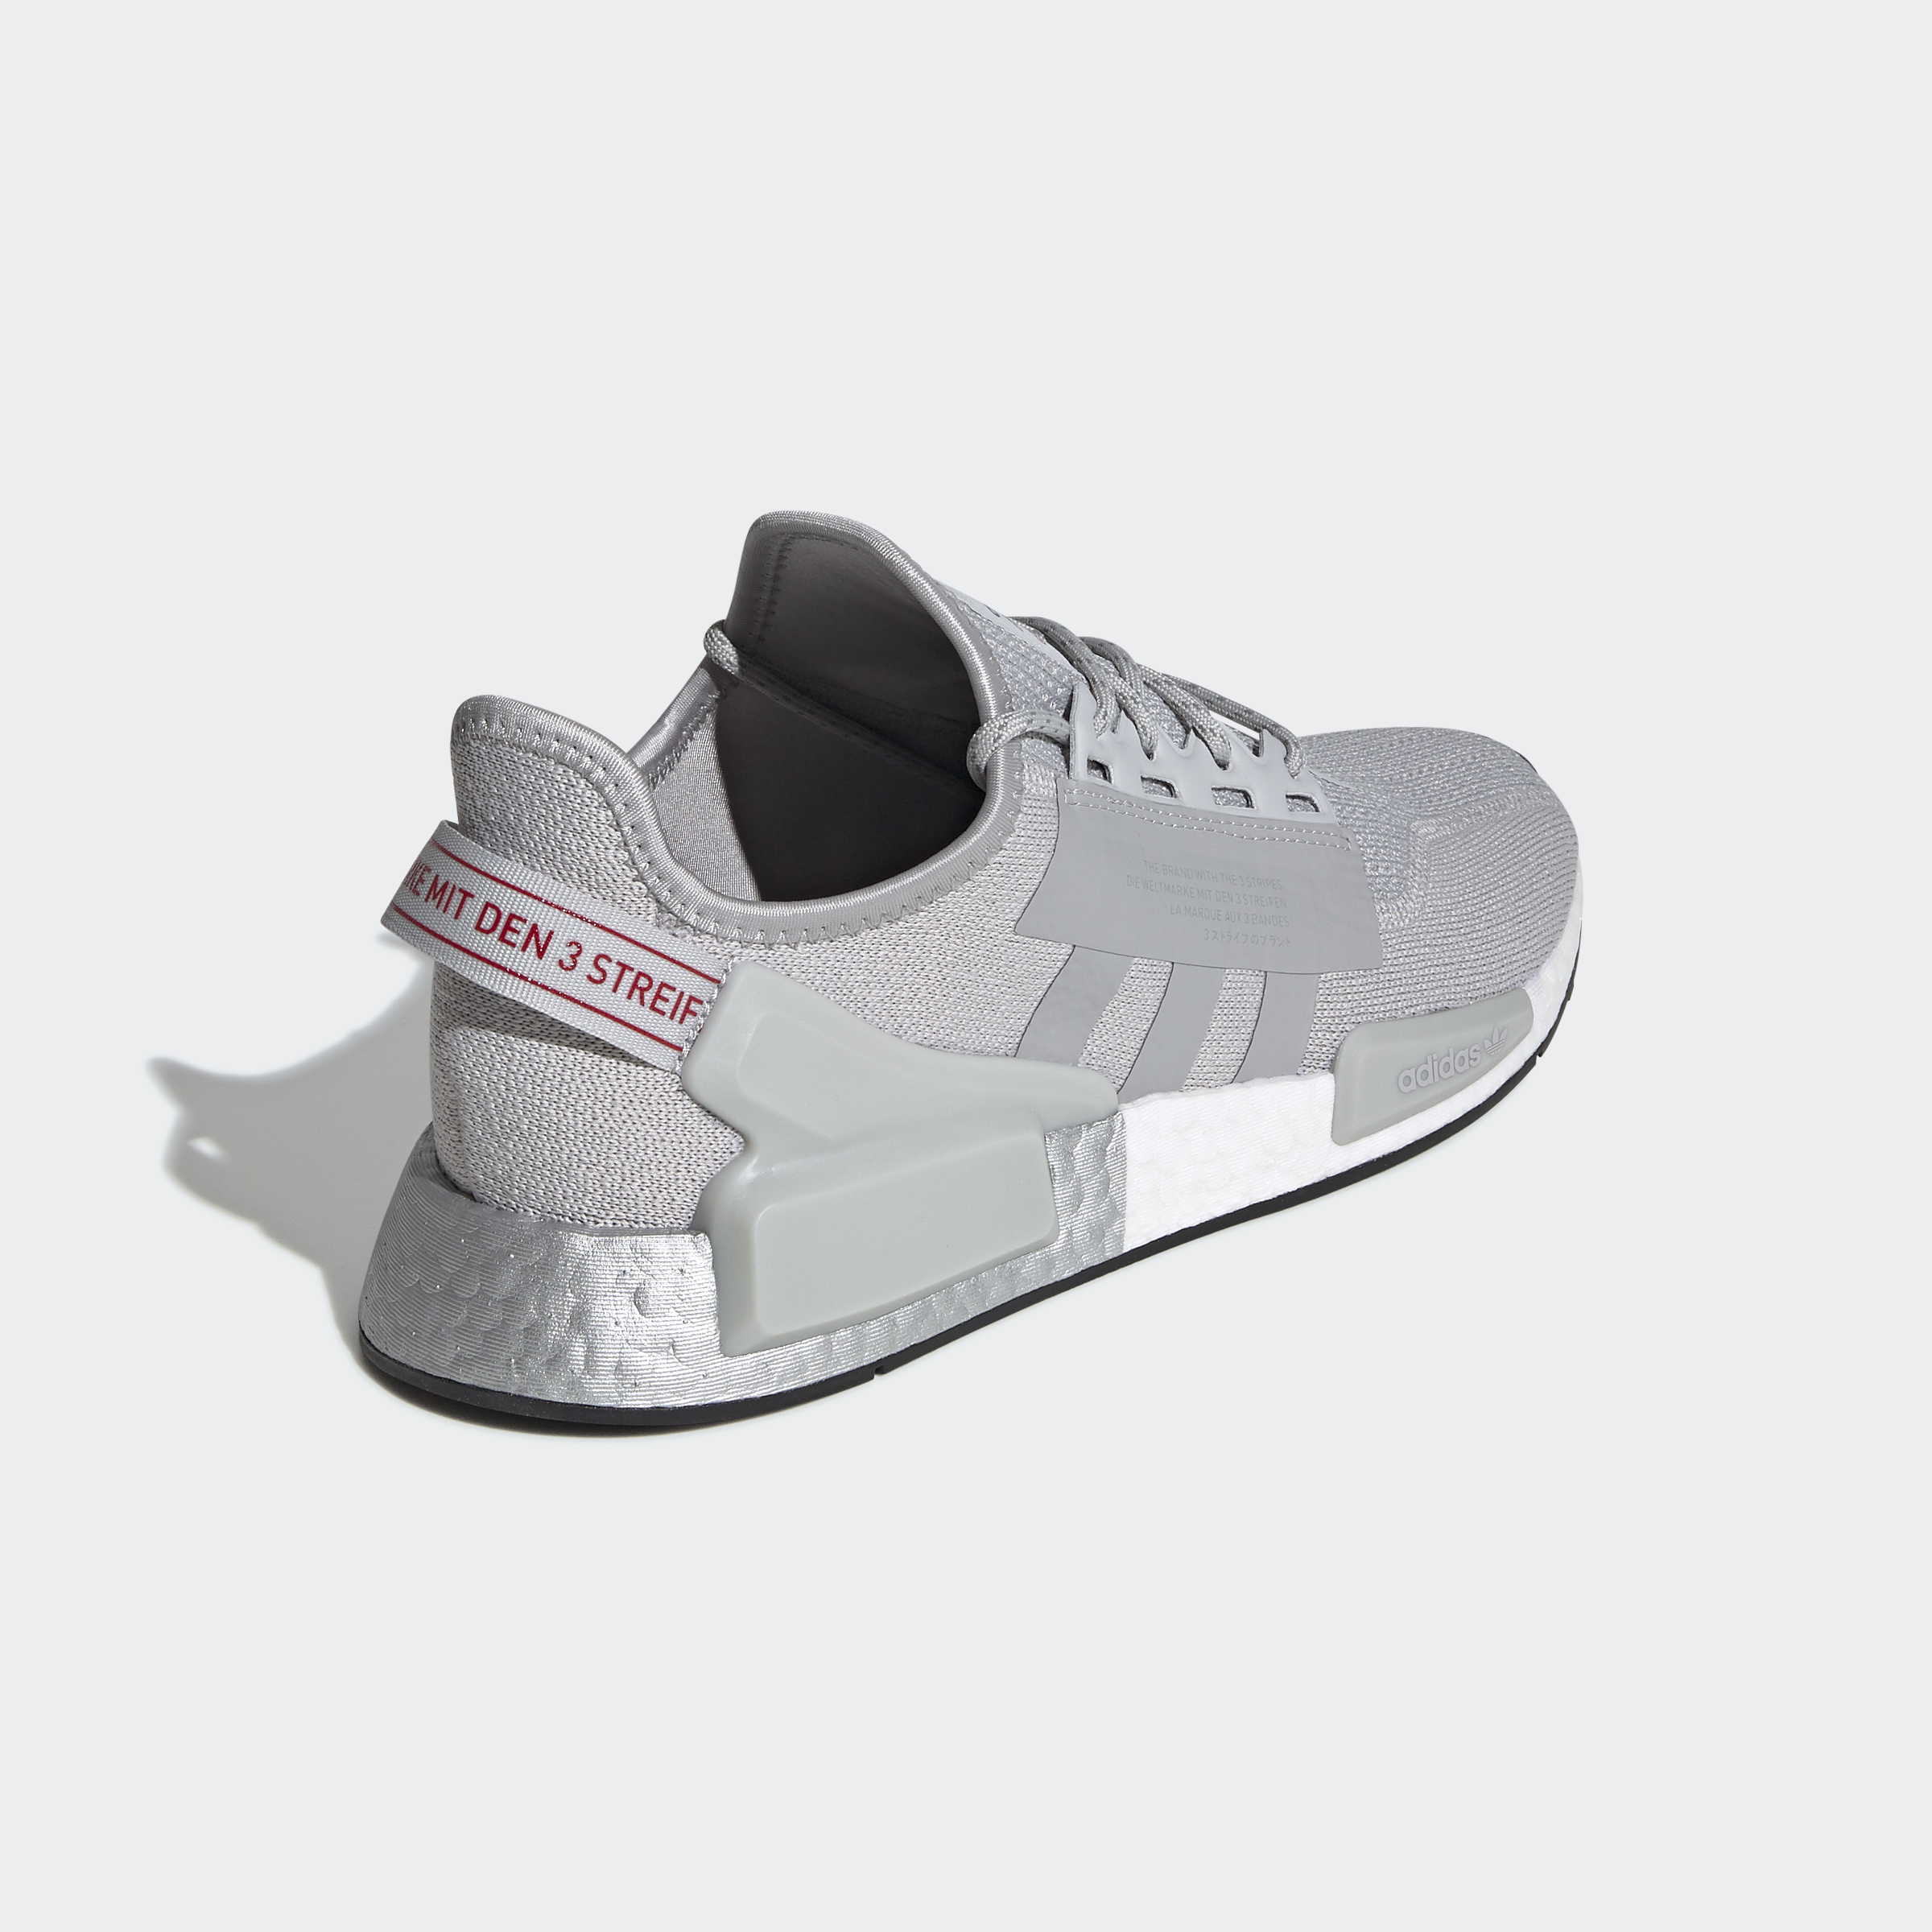 adidas-NMD-R1-V2-Shoes-Athletic-amp-Sneakers thumbnail 16